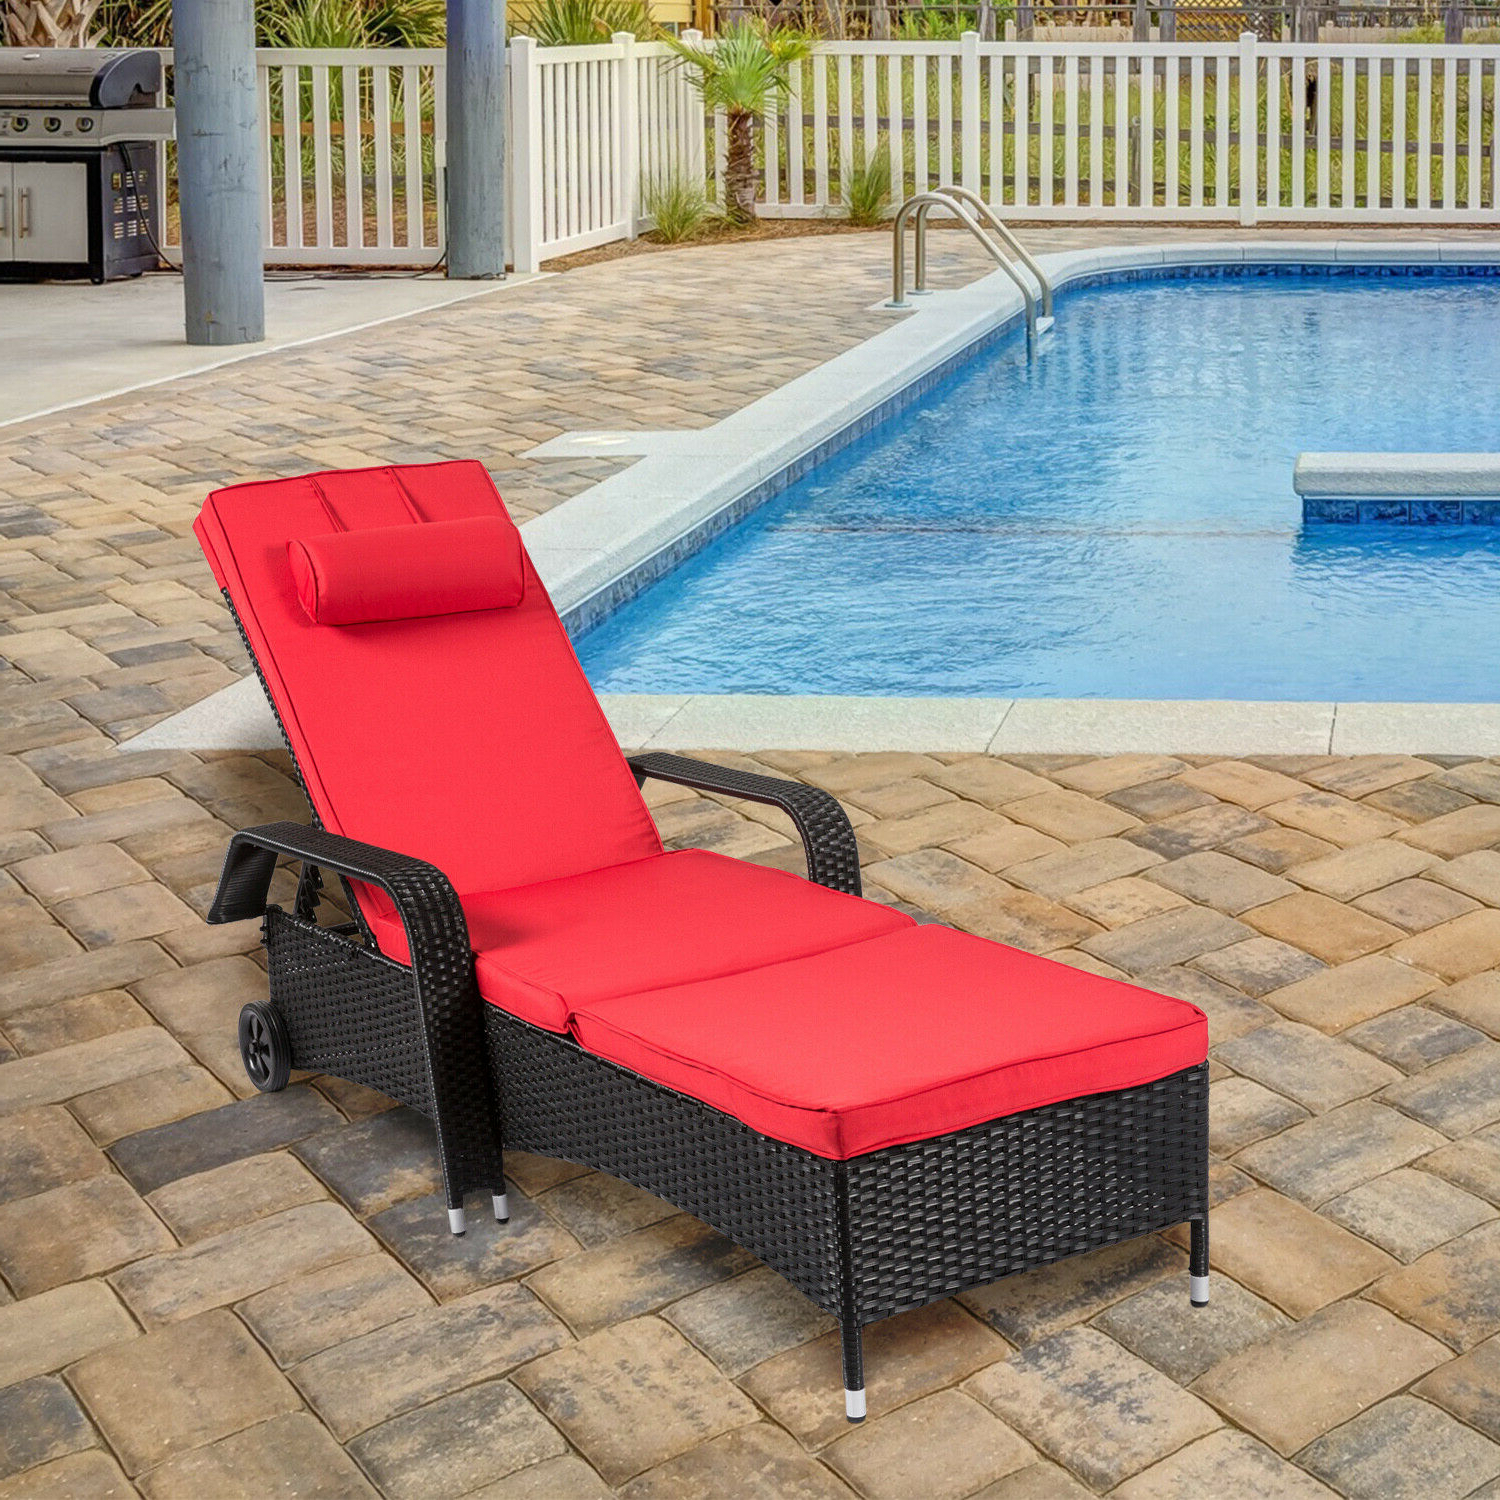 Well Liked Patio Rattan Wicker Chaise Lounge Recliner Adjustable Couch Chair Cushion  Wheels Intended For Outdoor Adjustable Rattan Wicker Recliner Chairs With Cushion (View 23 of 25)